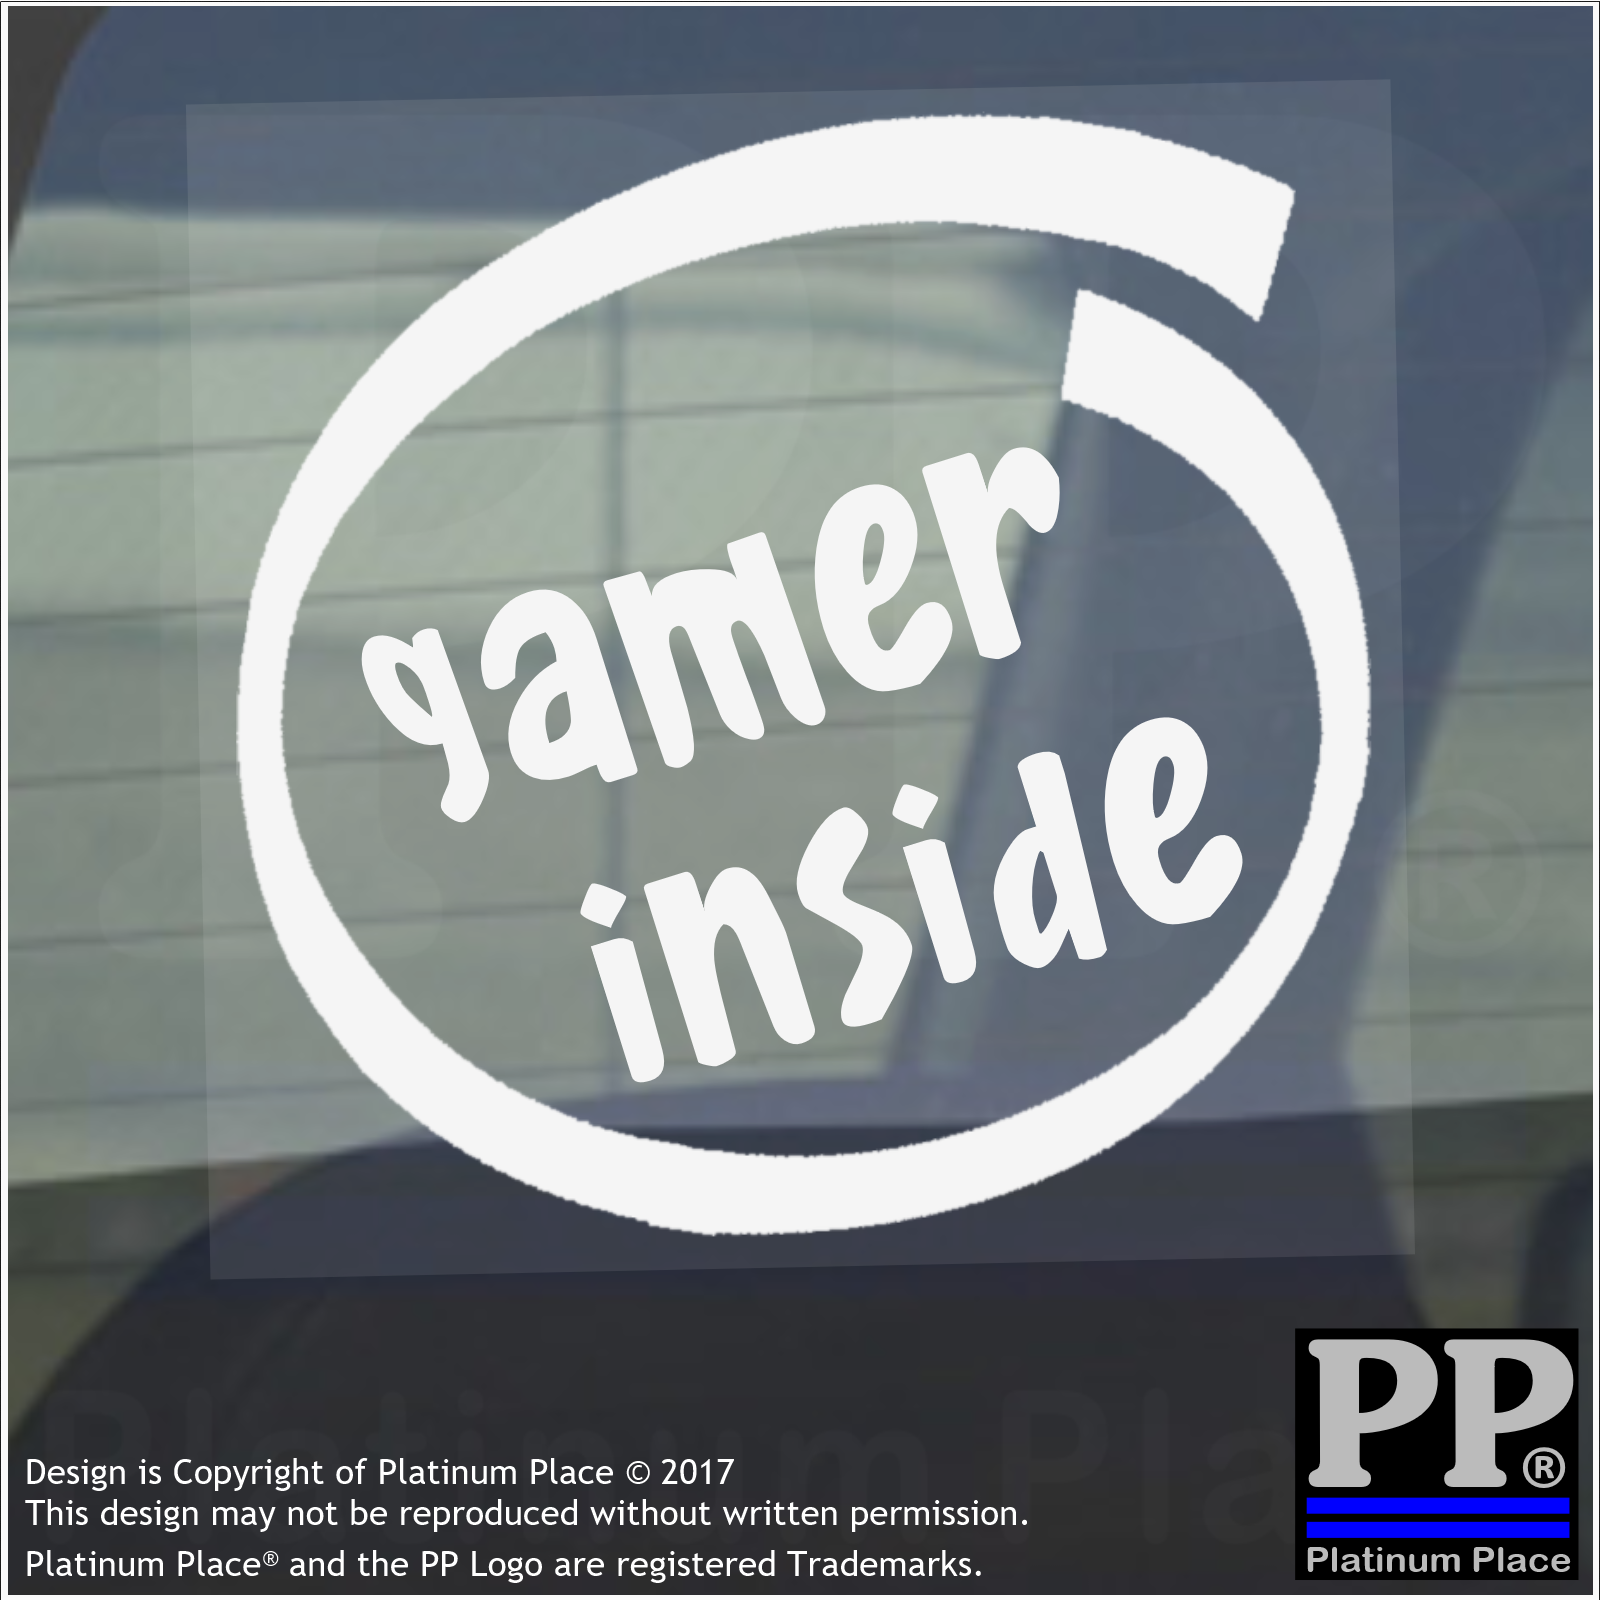 1 x gamer inside windowcarvanstickersignvehiclexboxps4gaming pcmacrpg